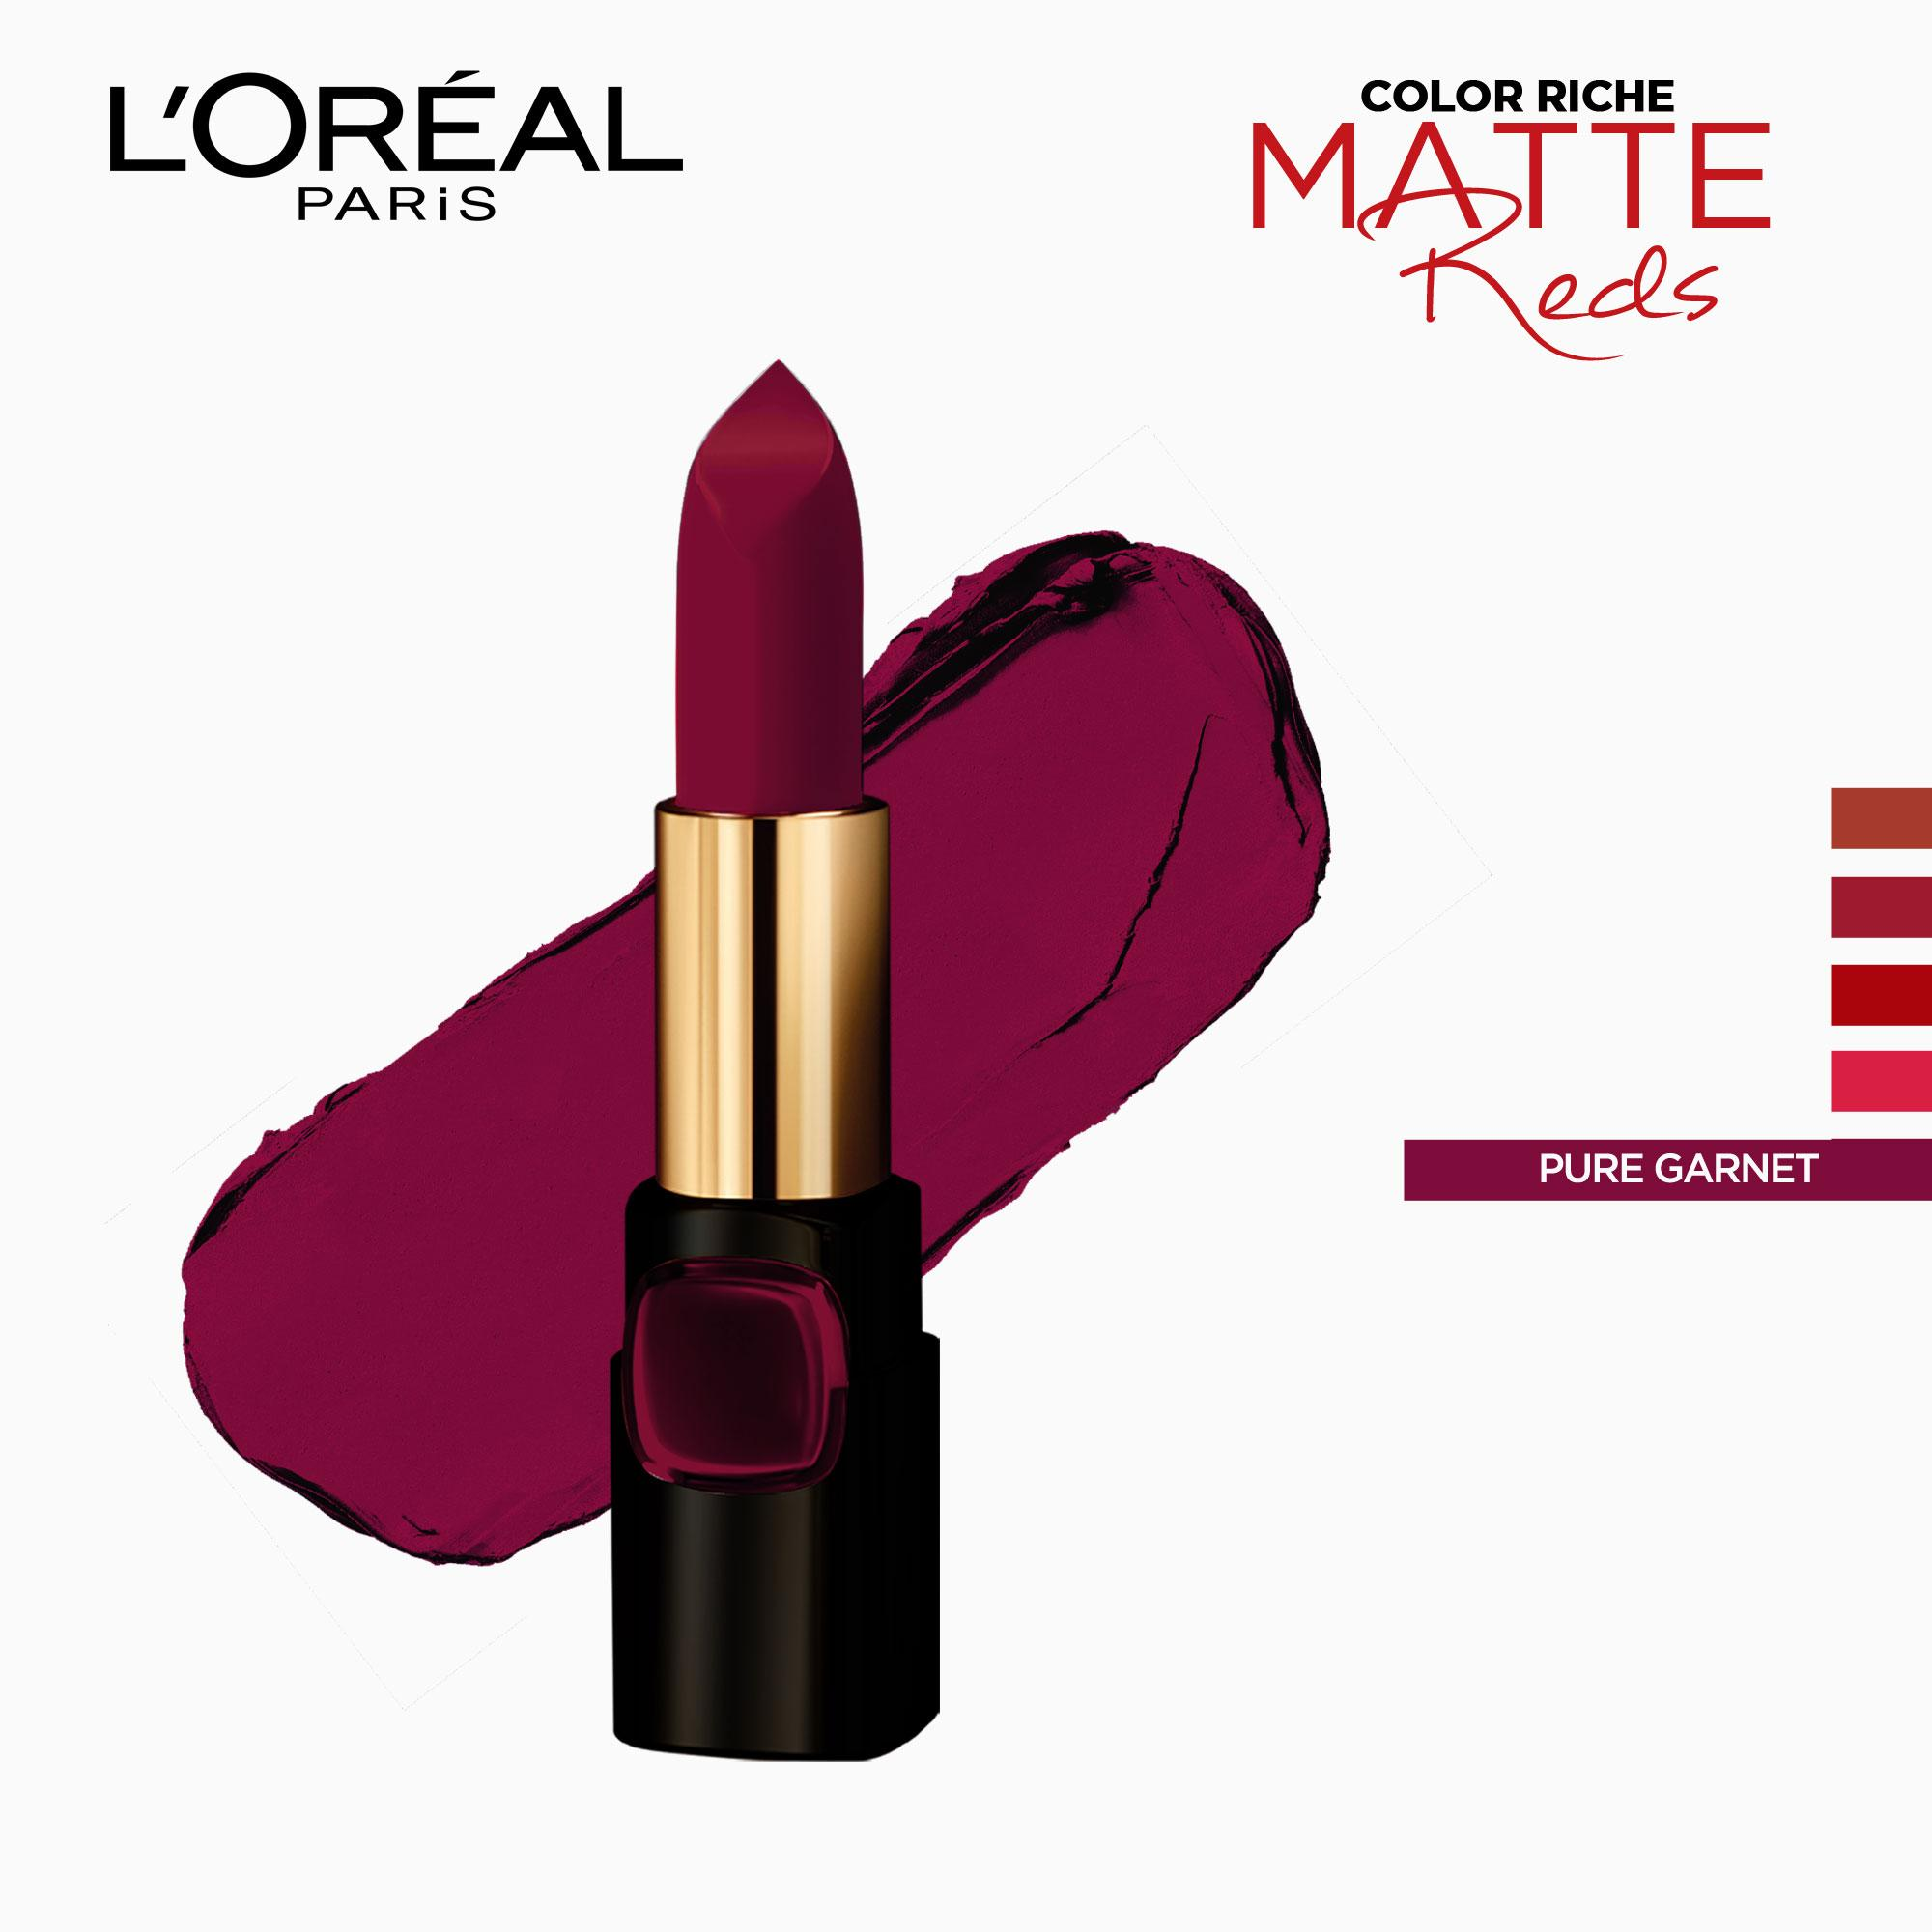 Matte Reds Richest Color Lipstick - Pure Garnet CSR4 [Sonam Kapoors] by LOréal Paris Color Riche Philippines